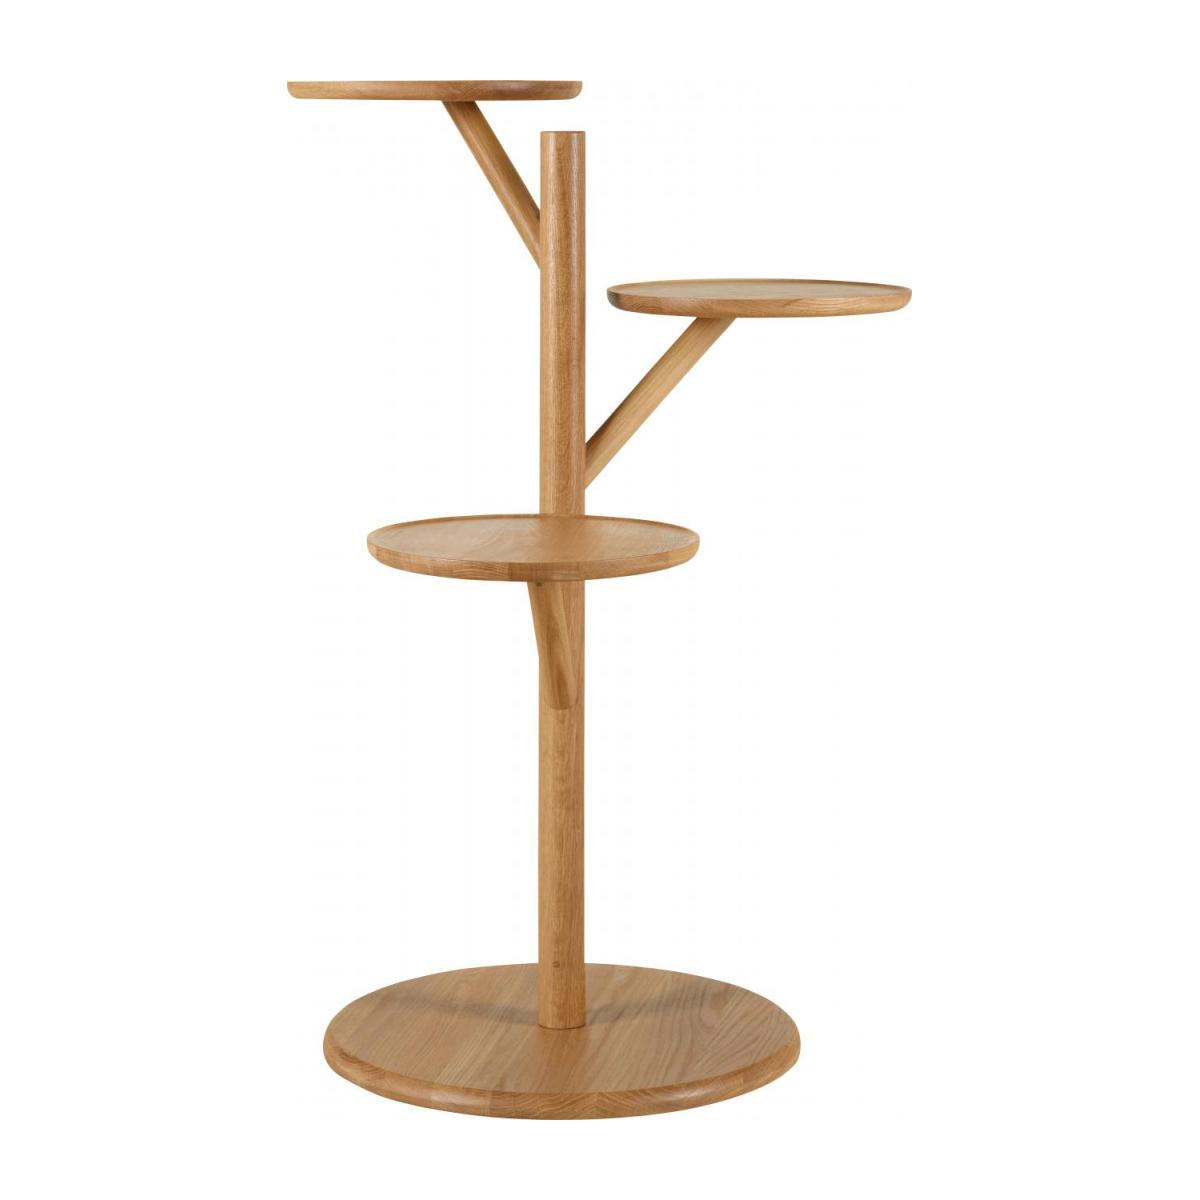 Oak side table  - Design by Baptiste Lanne n°3